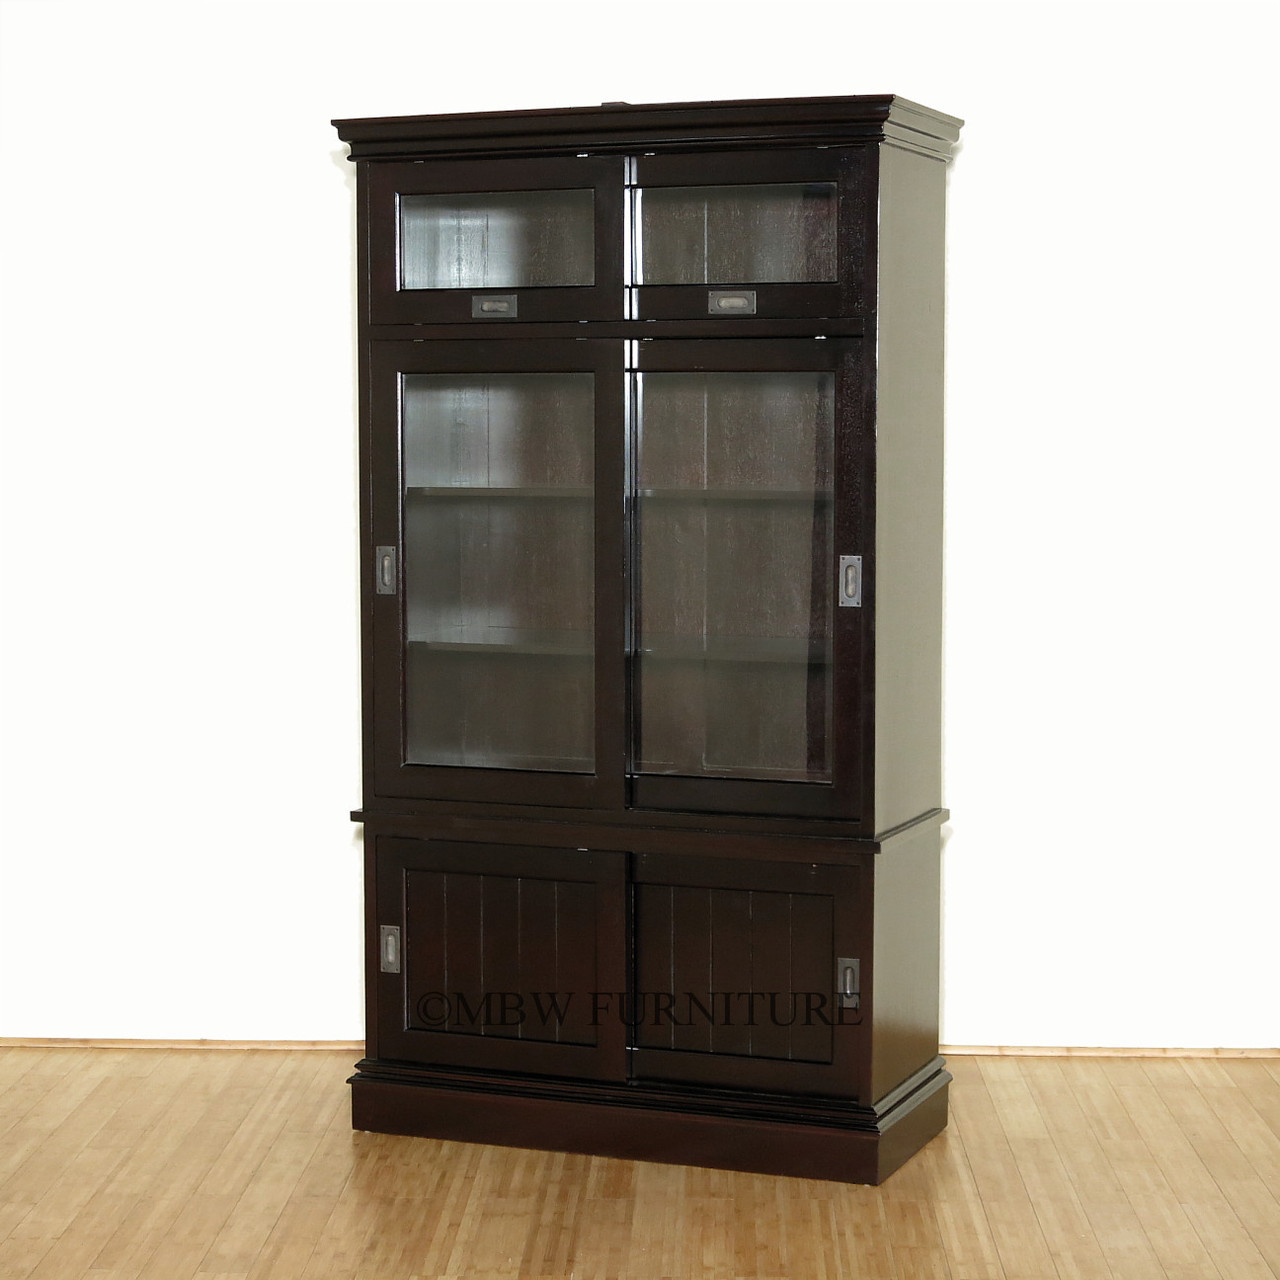 Lea Bedroom Furniture Solid Mahogany Espresso Bookcase Display Cabinet